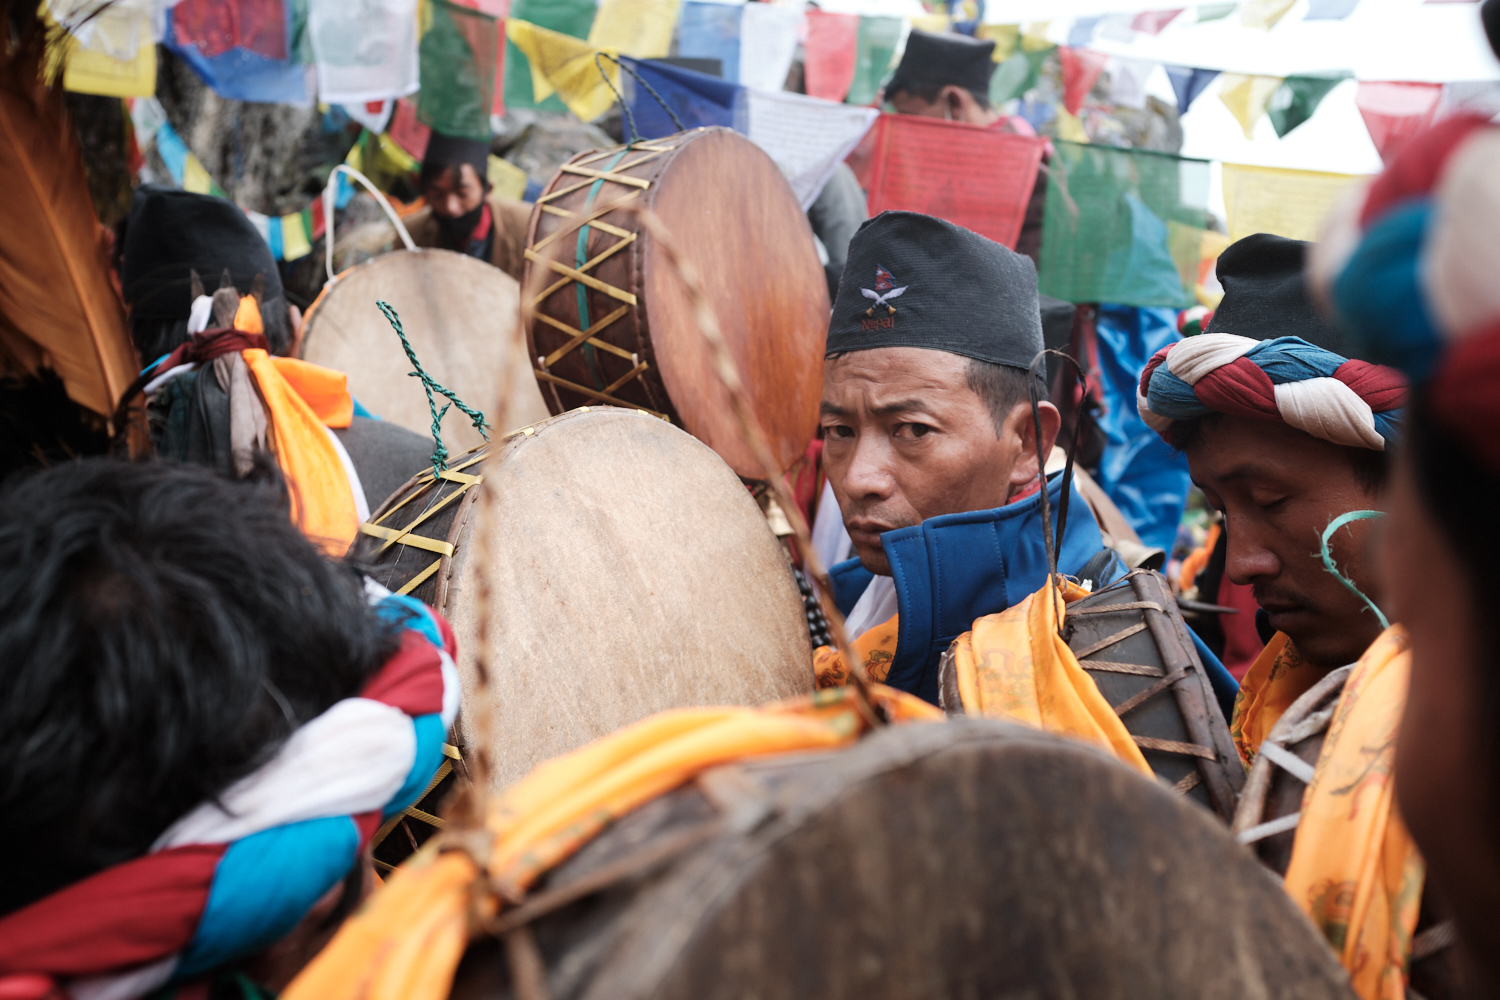 Shamans participate in rituals with traditional dhyangro drums